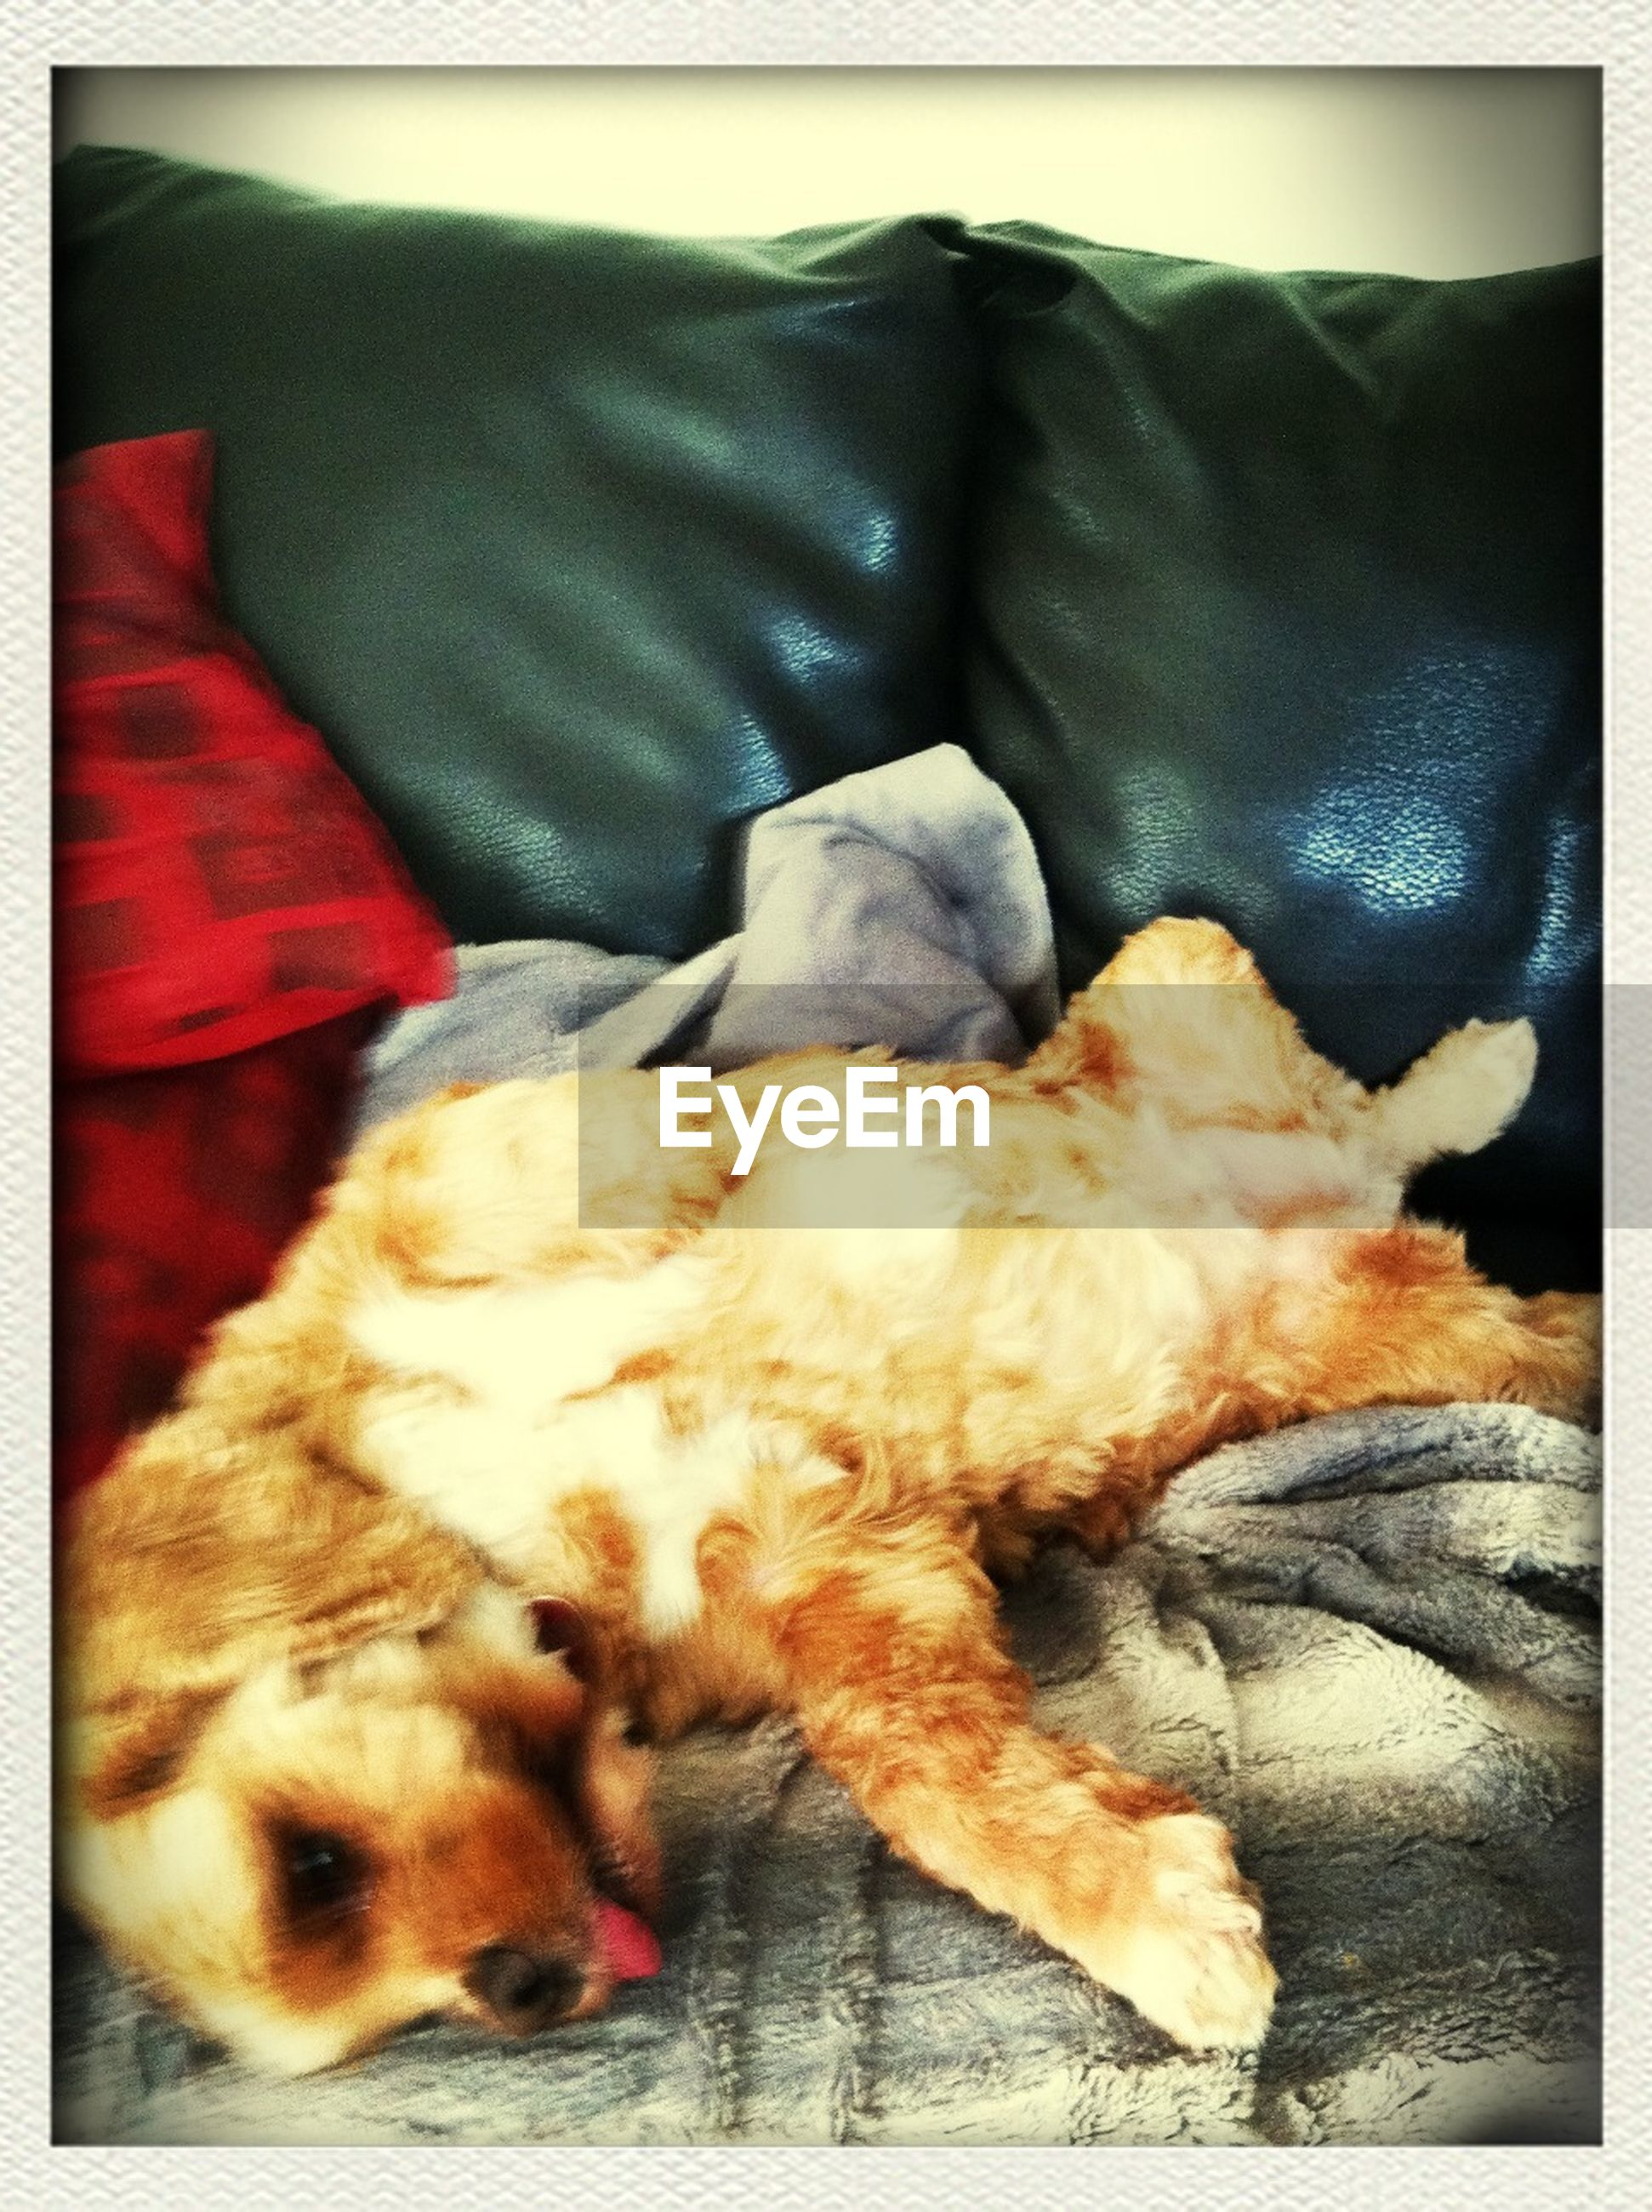 domestic animals, pets, transfer print, animal themes, dog, indoors, one animal, mammal, sleeping, relaxation, auto post production filter, resting, lying down, bed, home interior, sofa, eyes closed, comfortable, high angle view, close-up